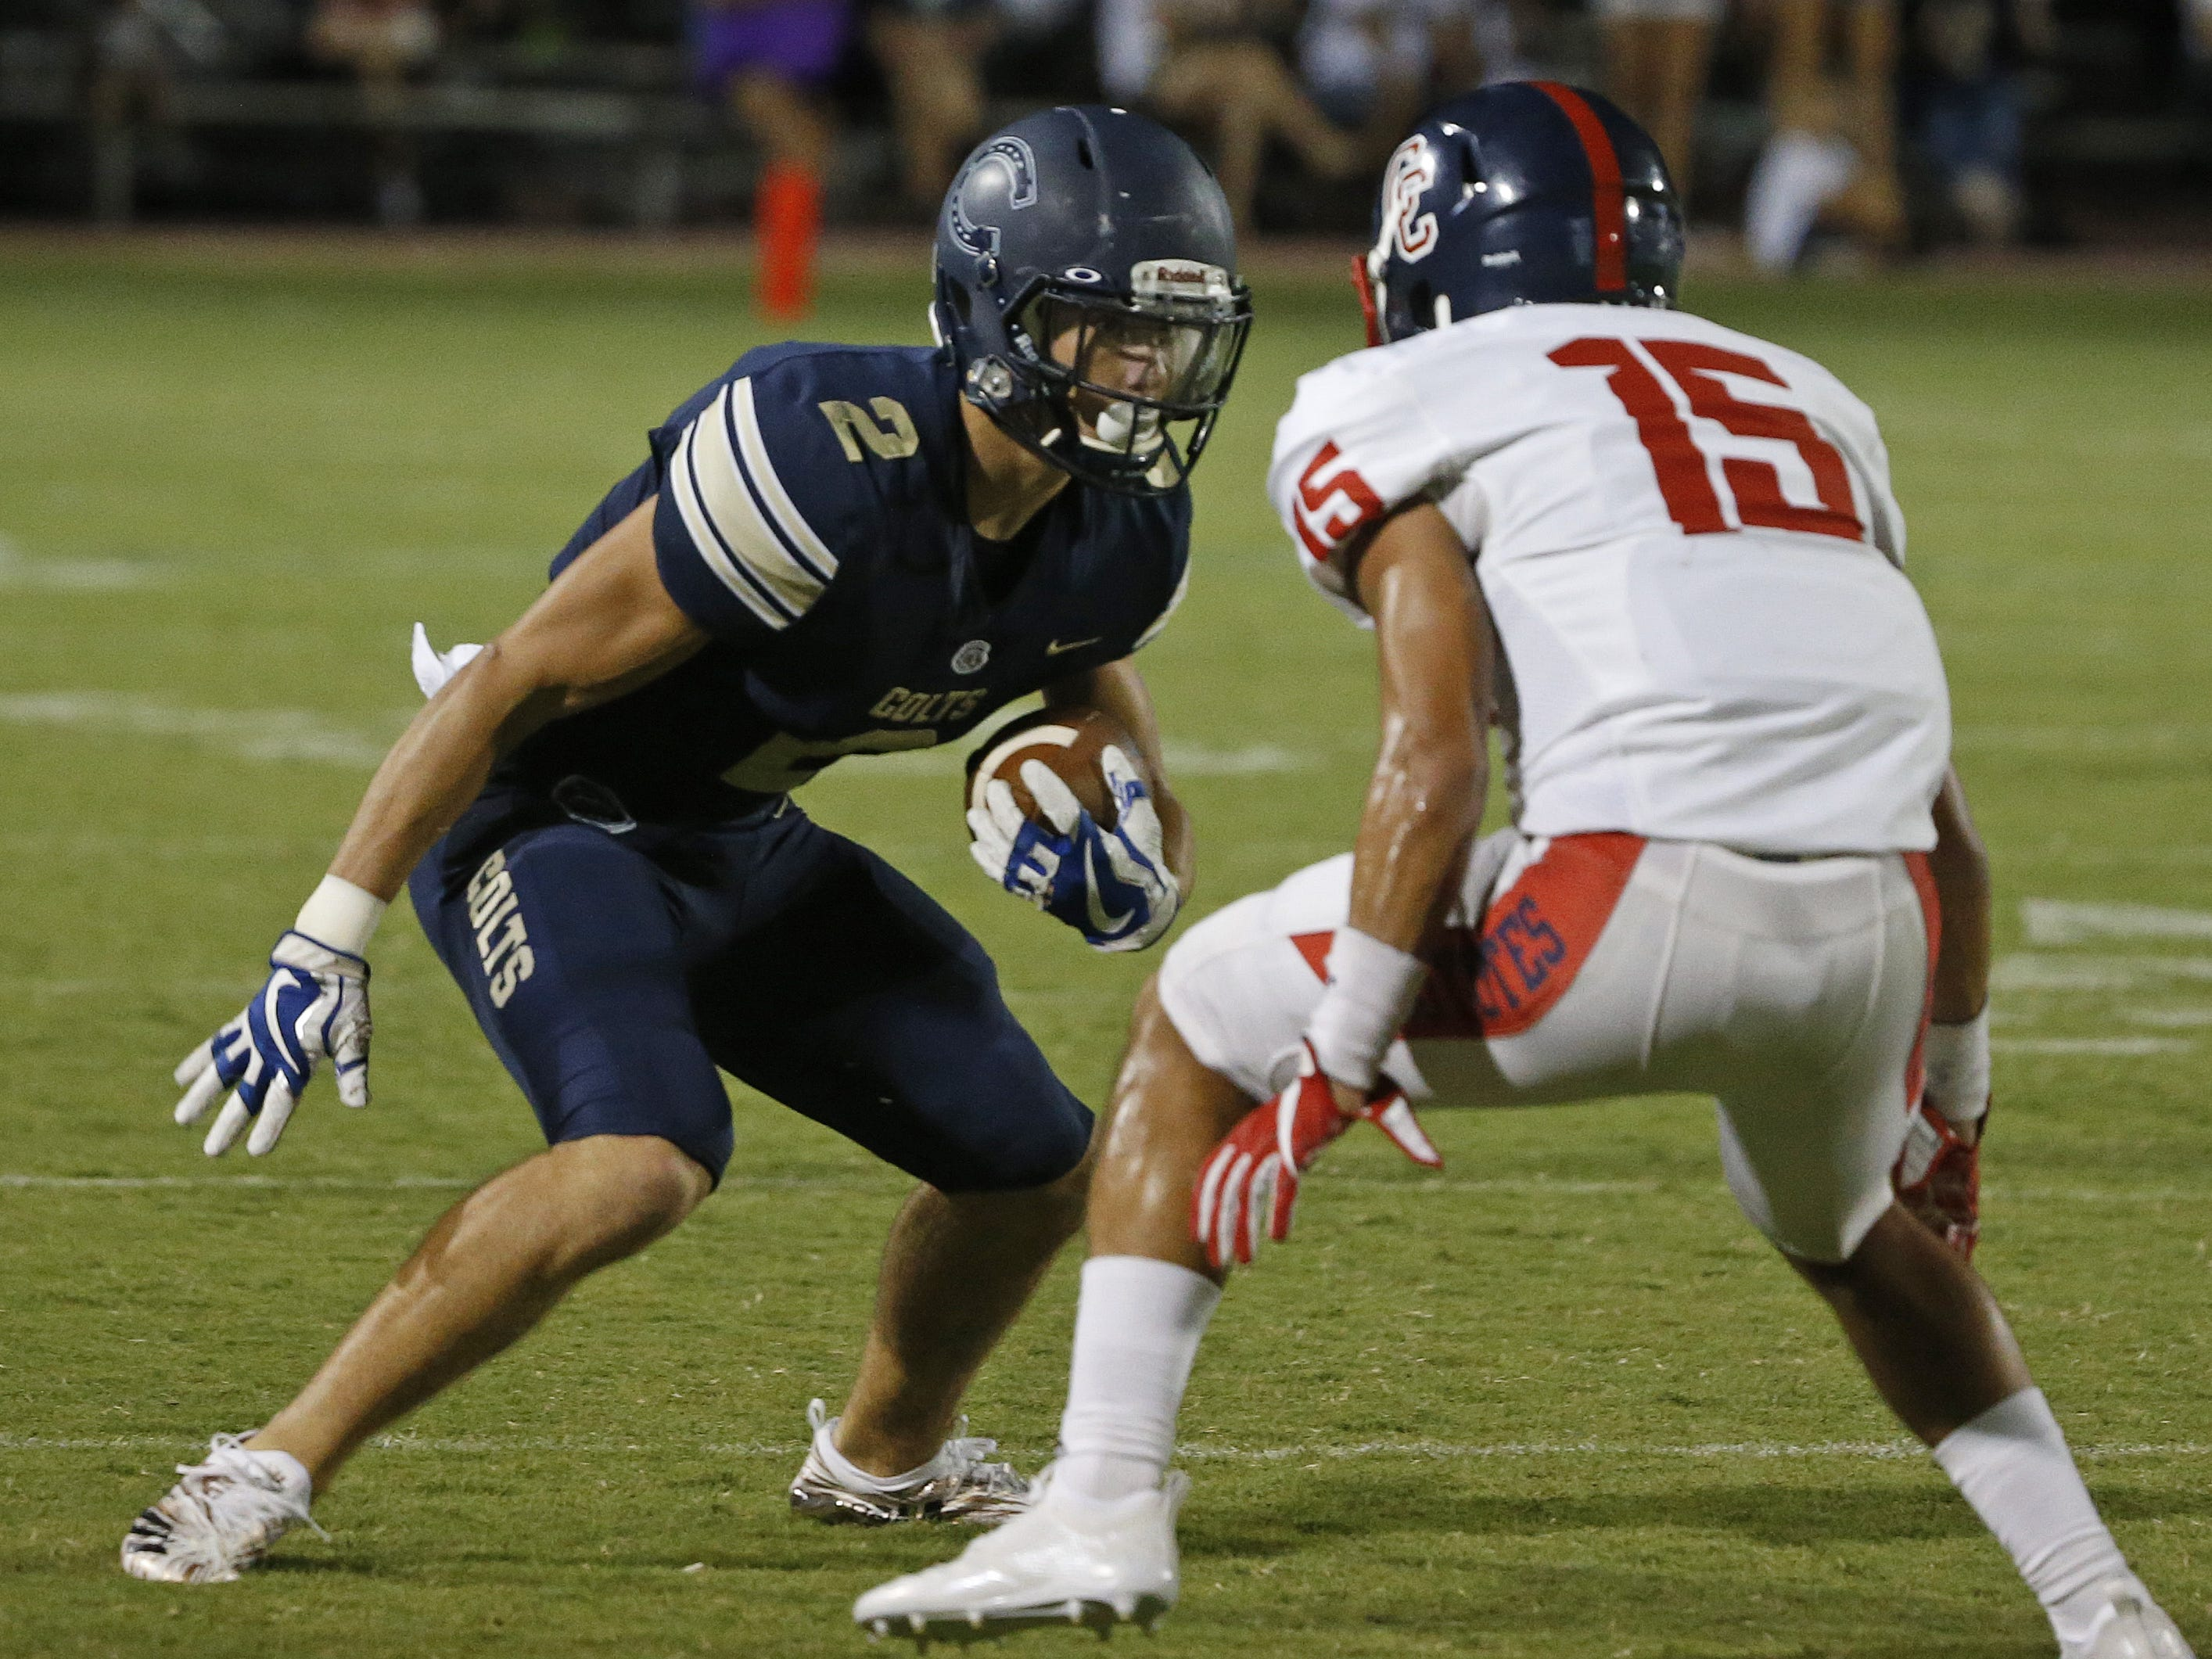 Centennial's Eric Haney (15) chases down Casteel's Zach Nelson (2) during the first half at Casteel High School in Queen Creek, Ariz. on Aug. 17, 2018.